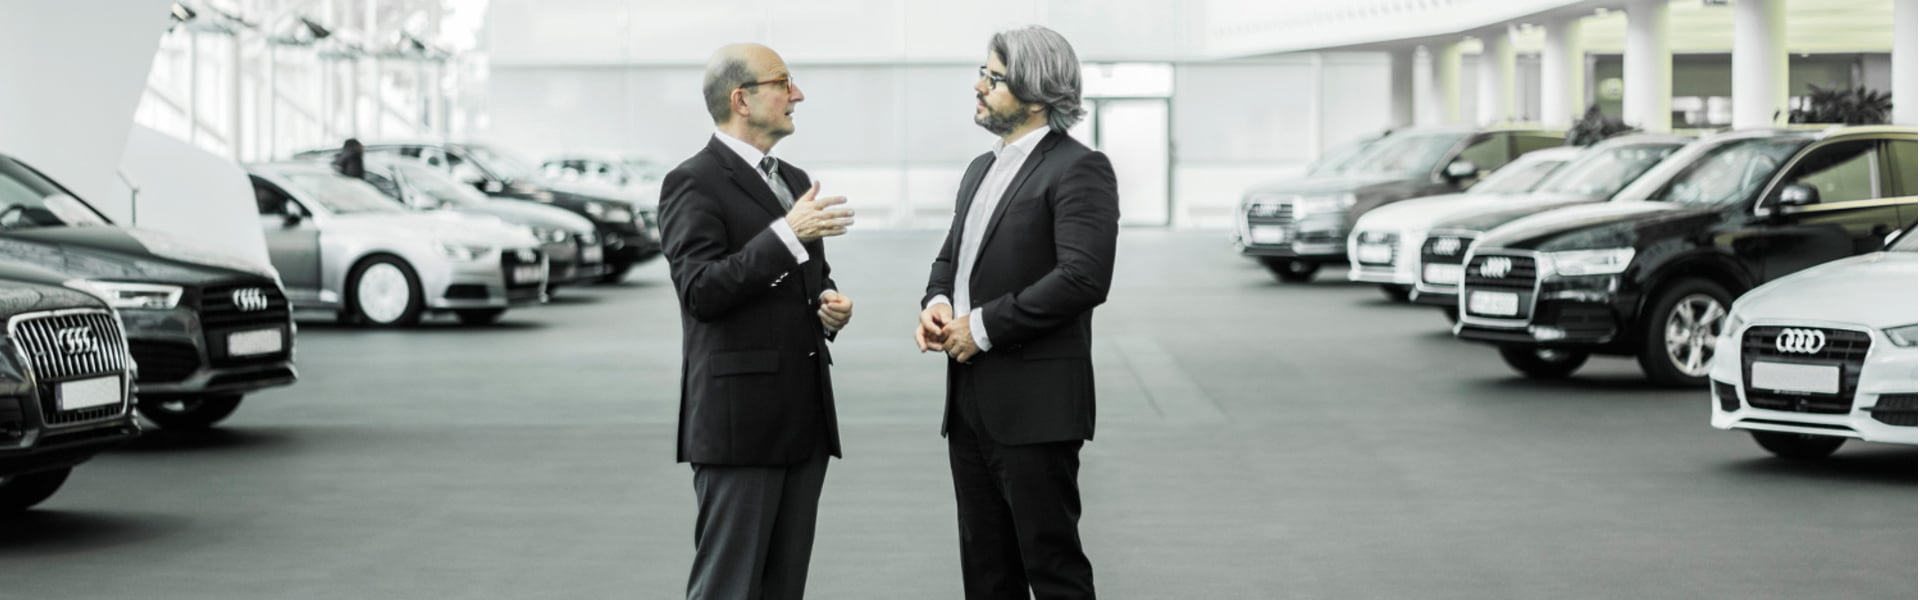 Heiko Schmidt, Head of Retailer Development/Training Germany at Audi, and Peter F. Tropschuh, Head of Strategy Sustainability at Audi, in conversation